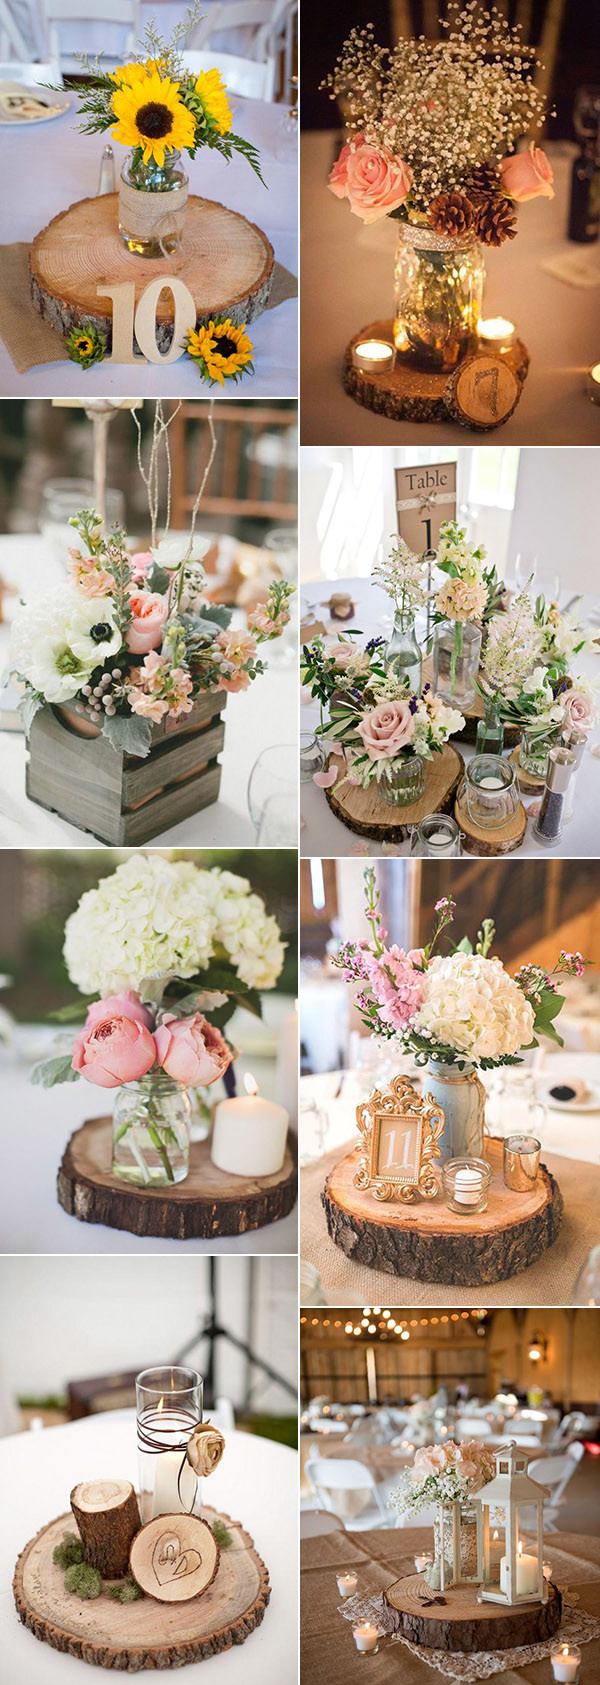 Fascinating 2017 Wedding Ideas Oh Day Ever Wedding Centerpiece Ideas Wedding Centerpiece Ideas Diy Country Rustic Wedding Centerpiece Ideas Wood Centerpieces ideas Wedding Centerpiece Ideas